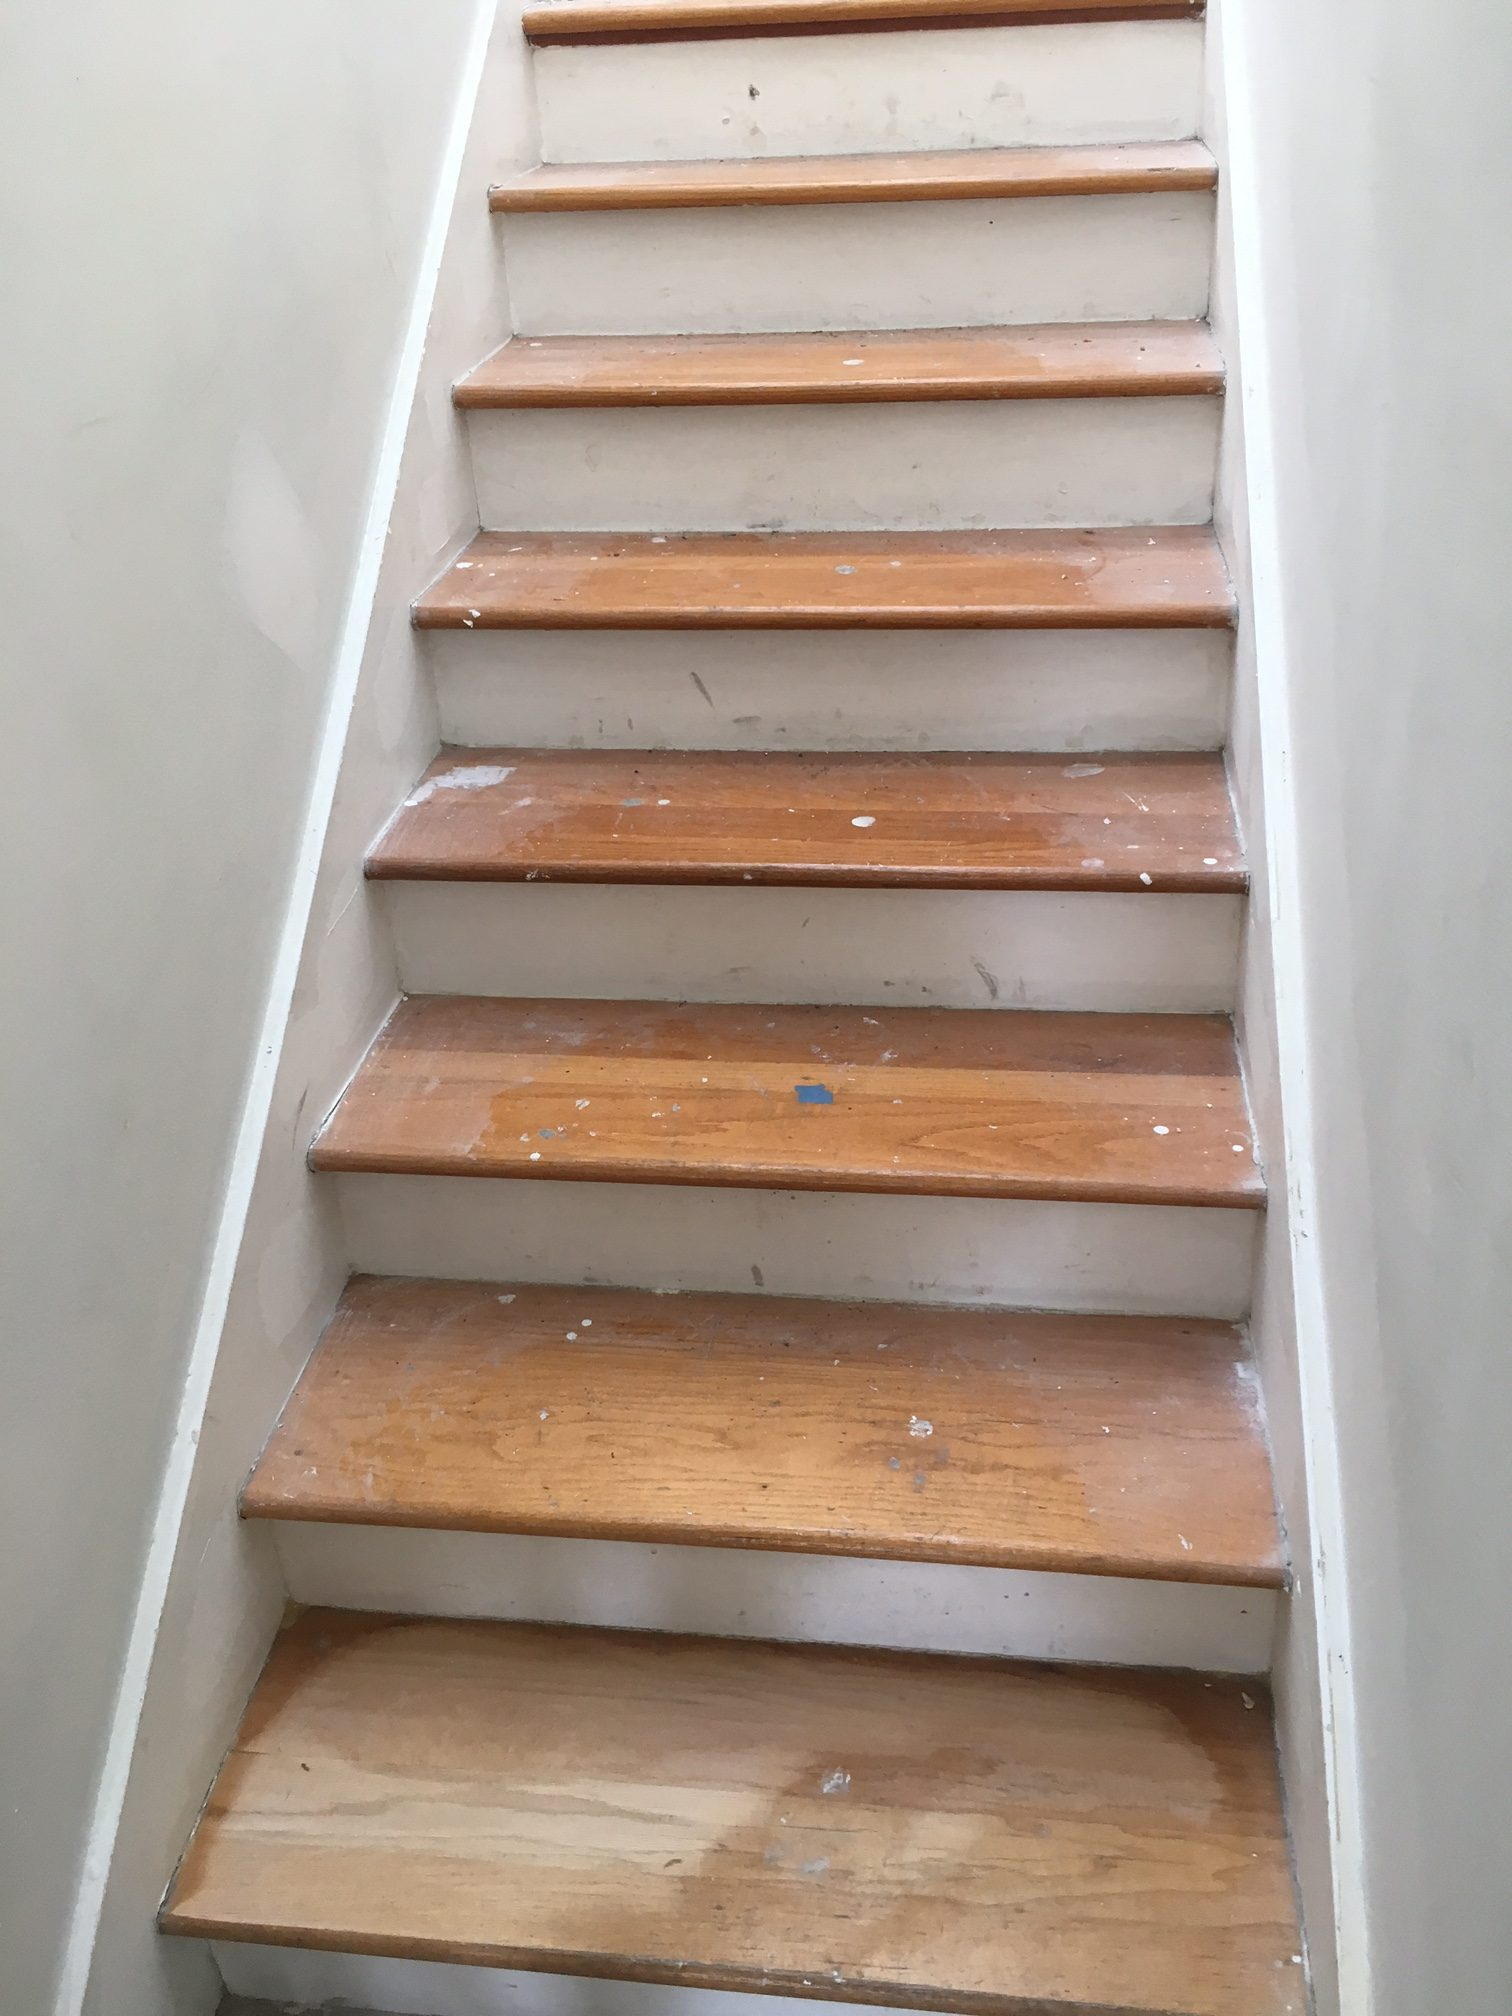 After Seeing The Tile Flooring And Their Stair Treads, We Recommended  Refinishing The Red Oak Stair Treads To Simulate Their Wood Look Floor  Tiles.